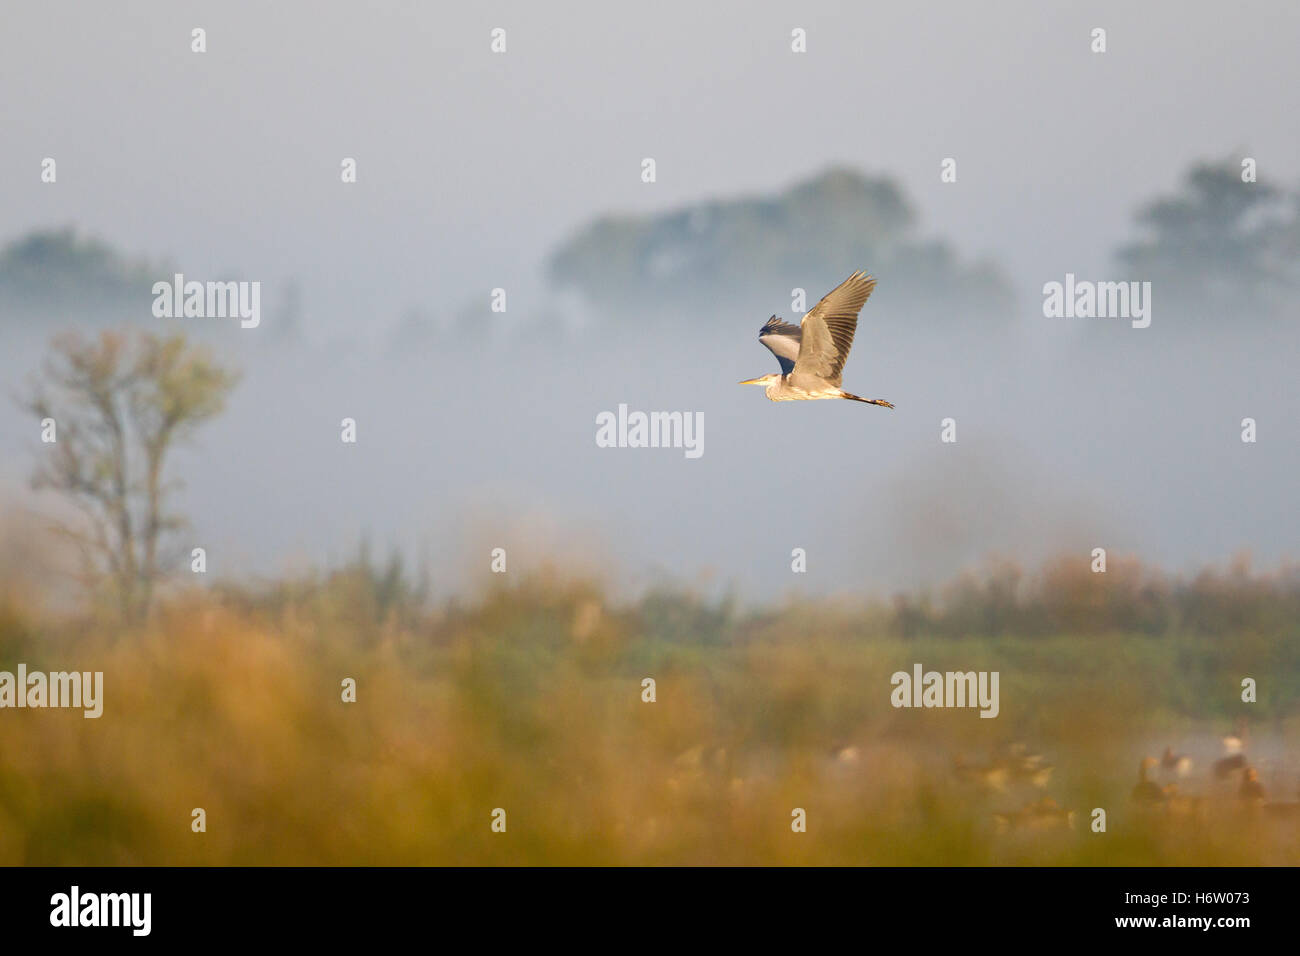 birds - Stock Image